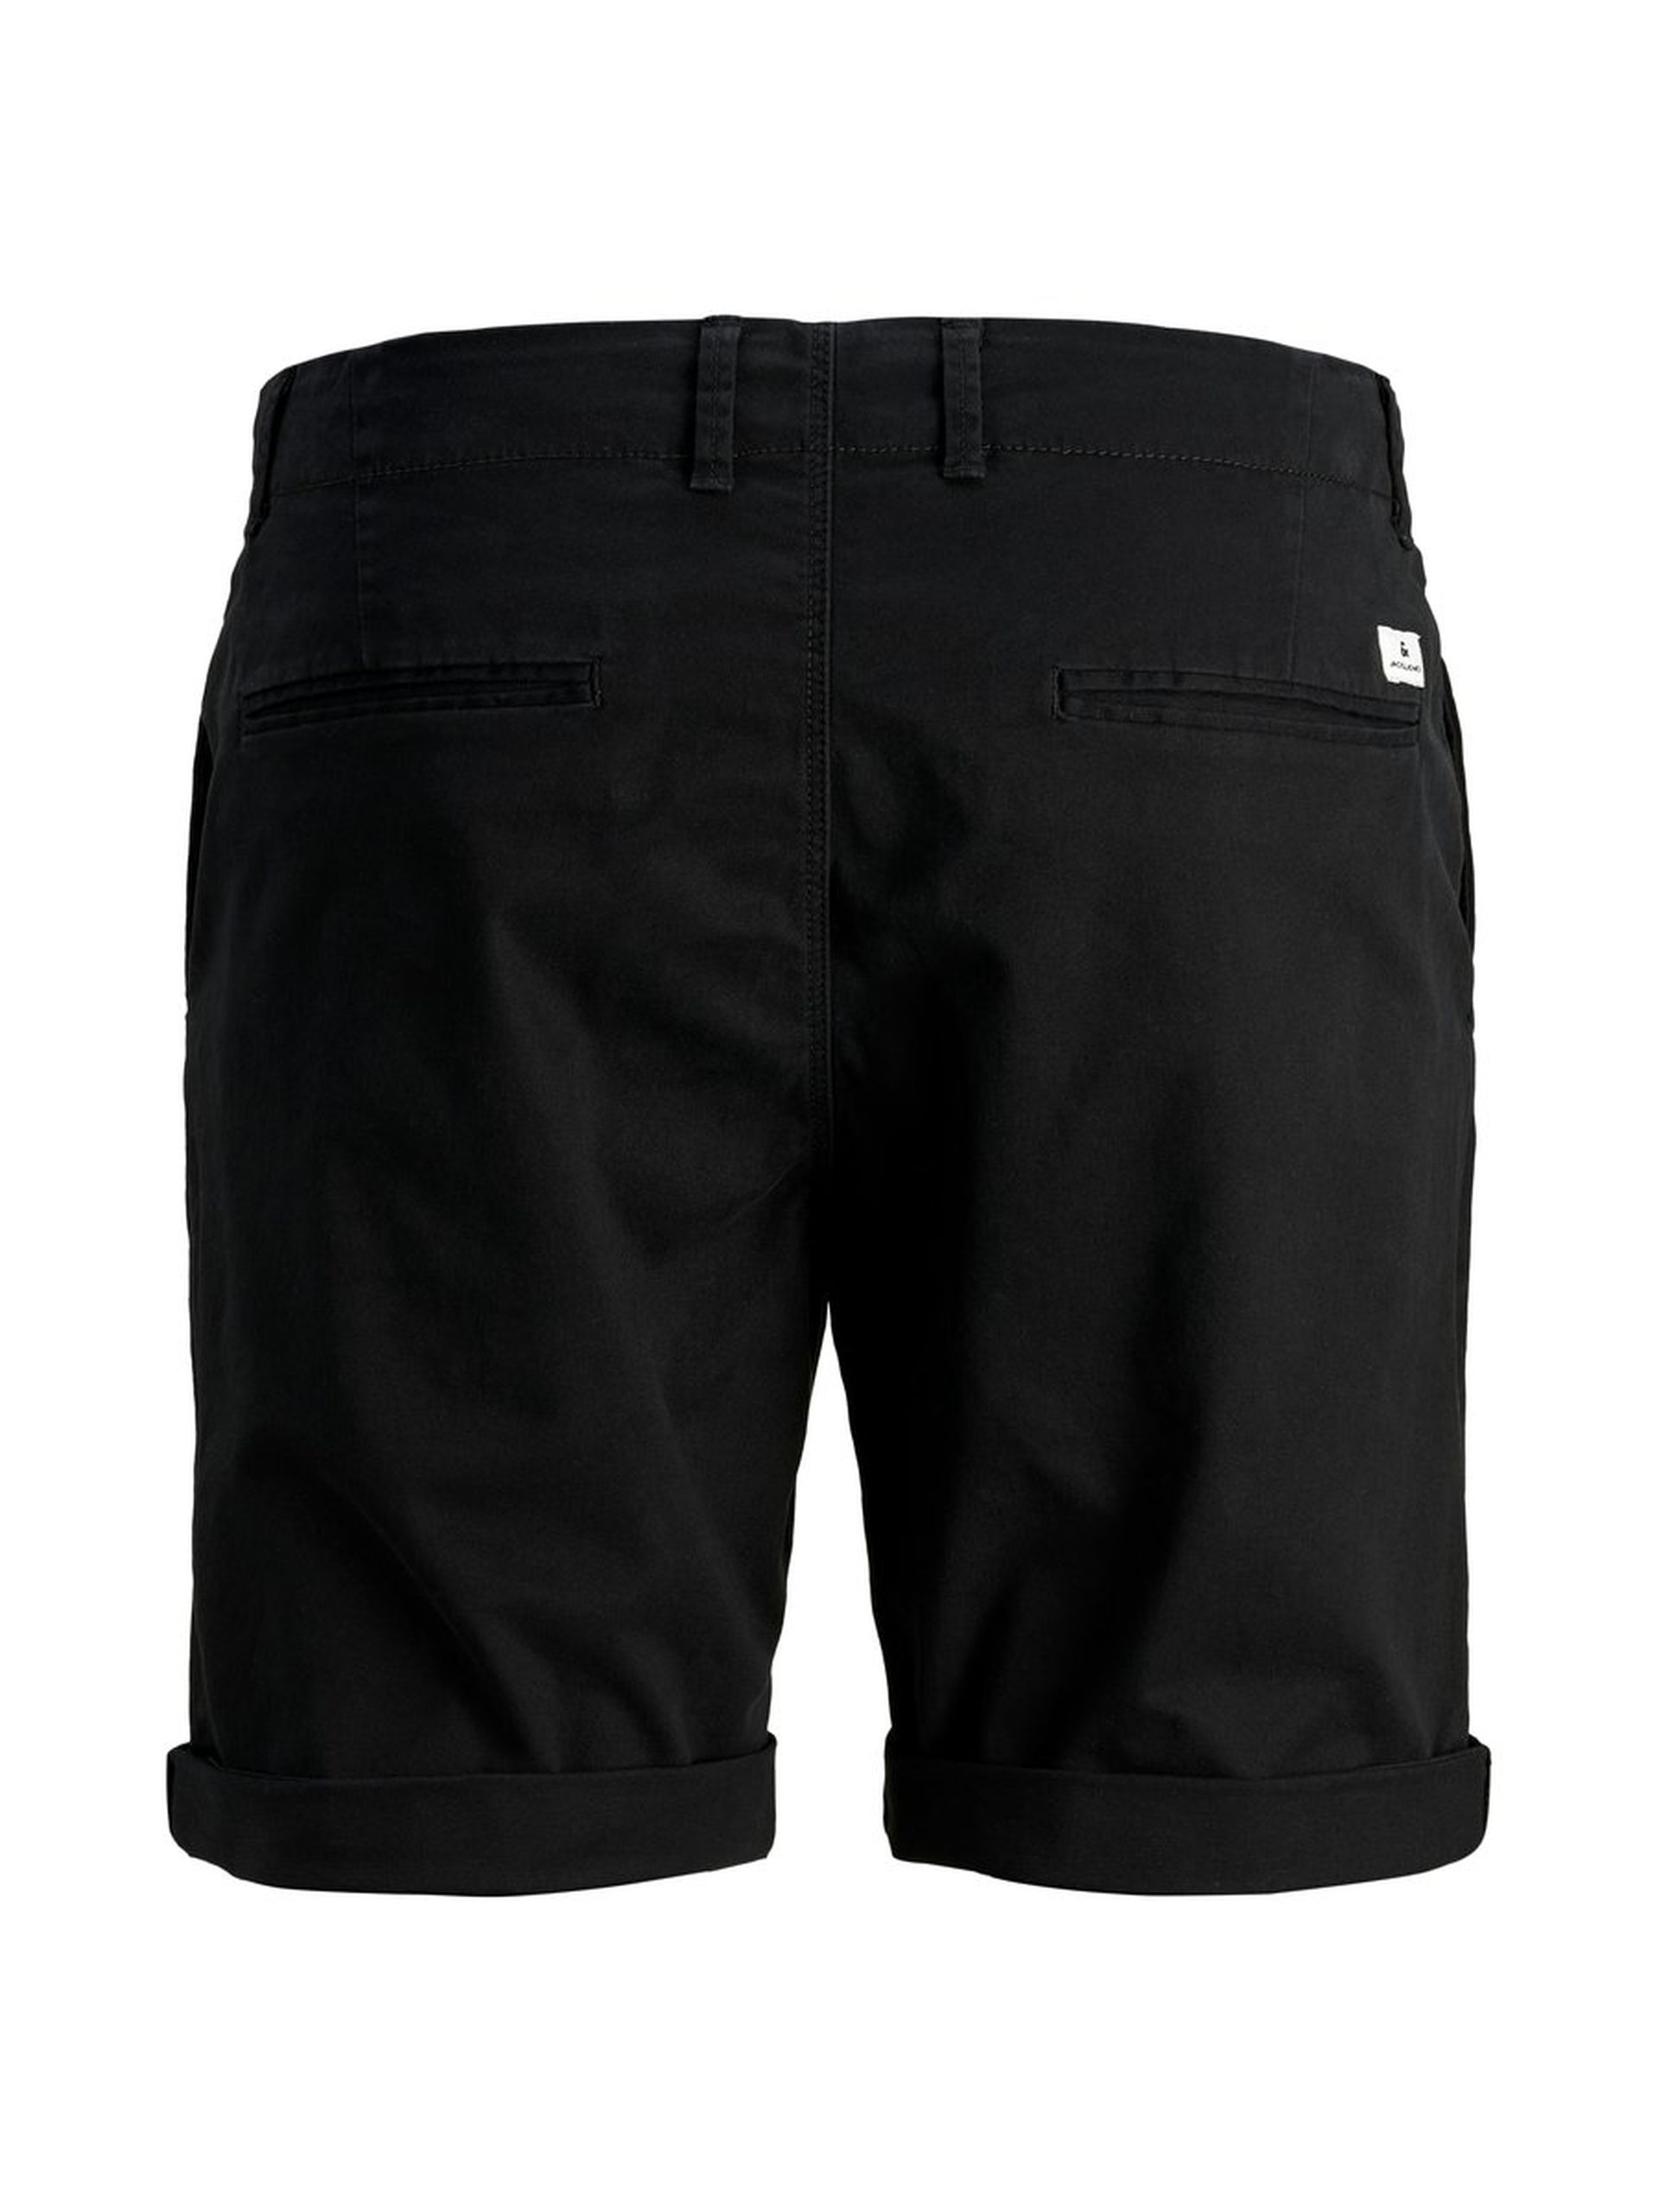 Jack-amp-Jones-Mens-039-JJIENZO-039-Chino-Shorts thumbnail 4